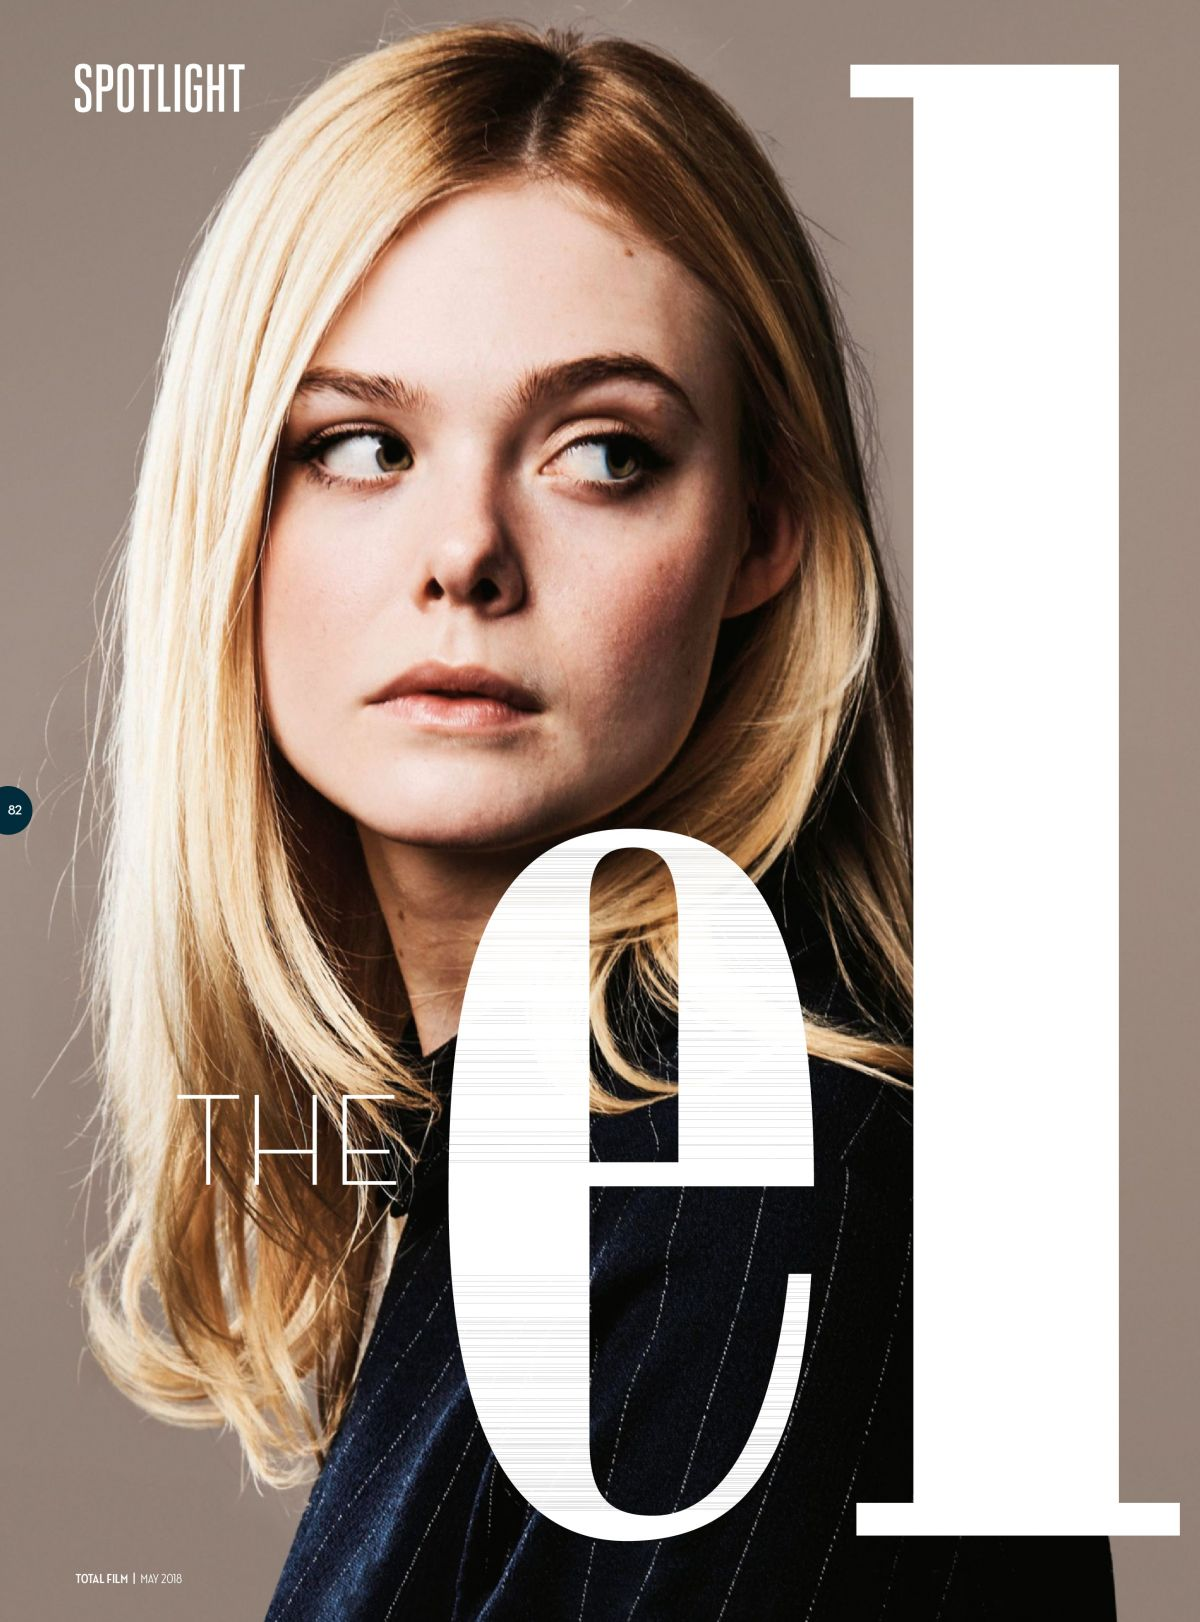 May 2018 Free Pdf Magazine Download: ELLE FANNING In Total Film Magazine, May 2018 Issue